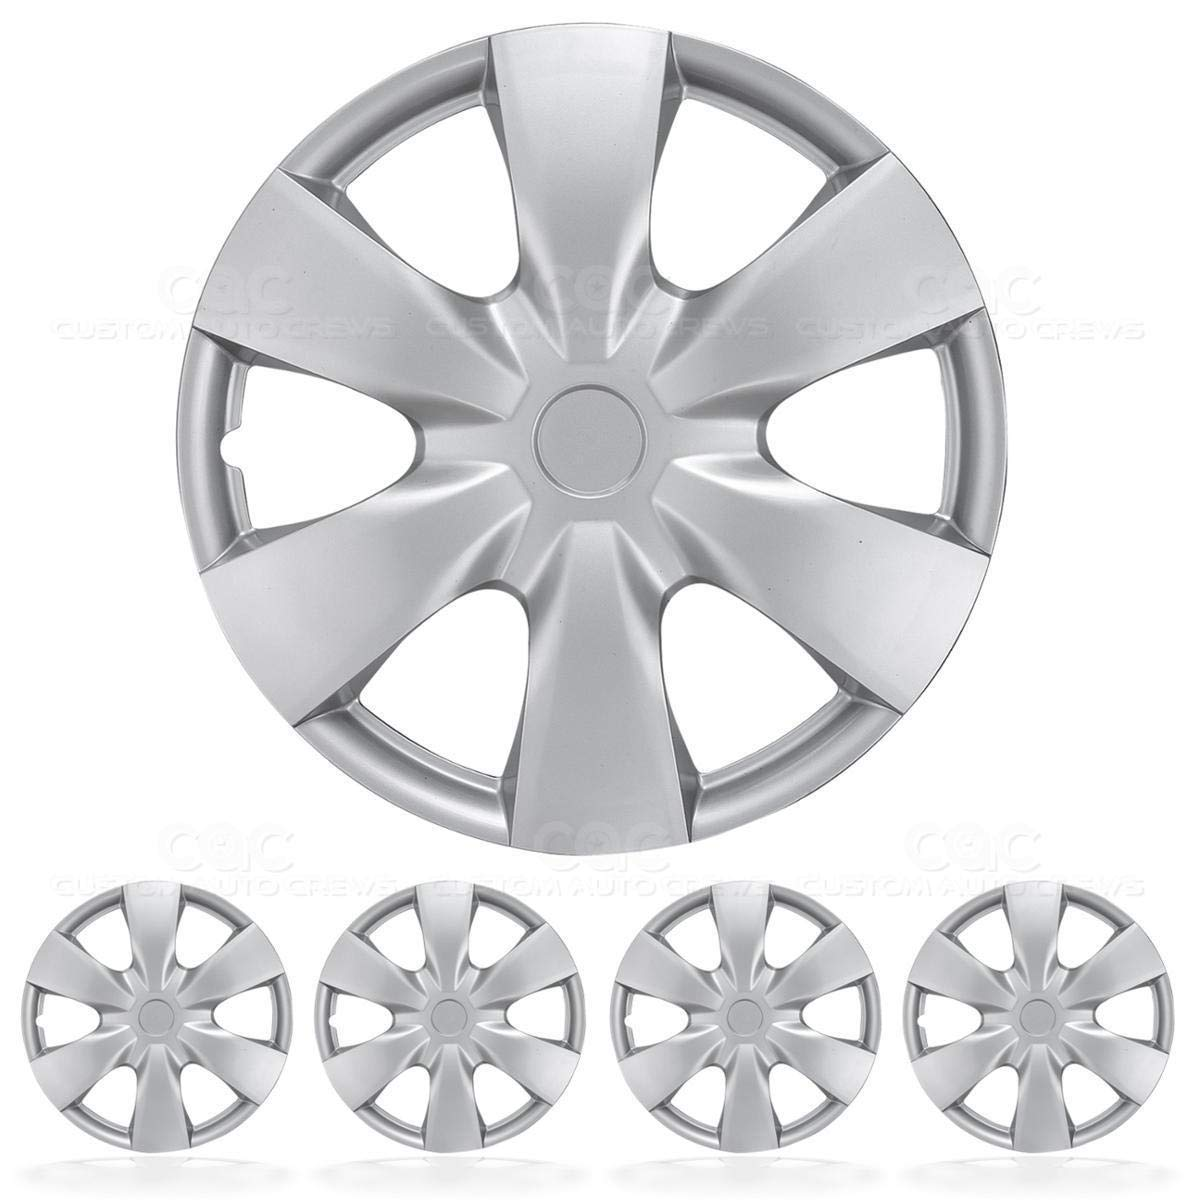 IWCC2029R Part Number Set of 4 Replacement Aftermarket Center Caps Hub Cover Fits 15x7 Inch Steel Wheel